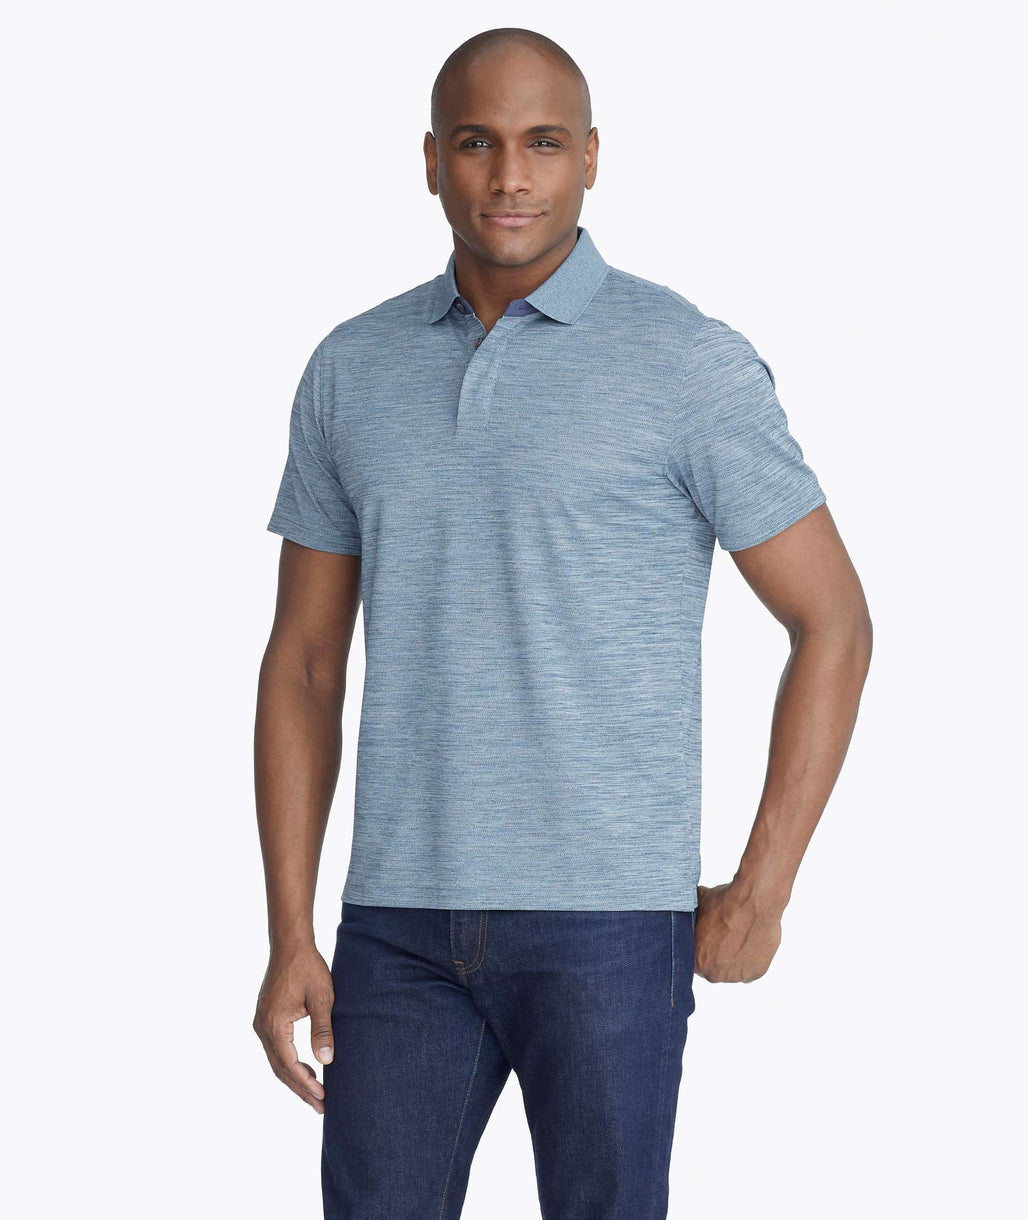 Model wearing a Bright Blue Heathered No Sweat Polo